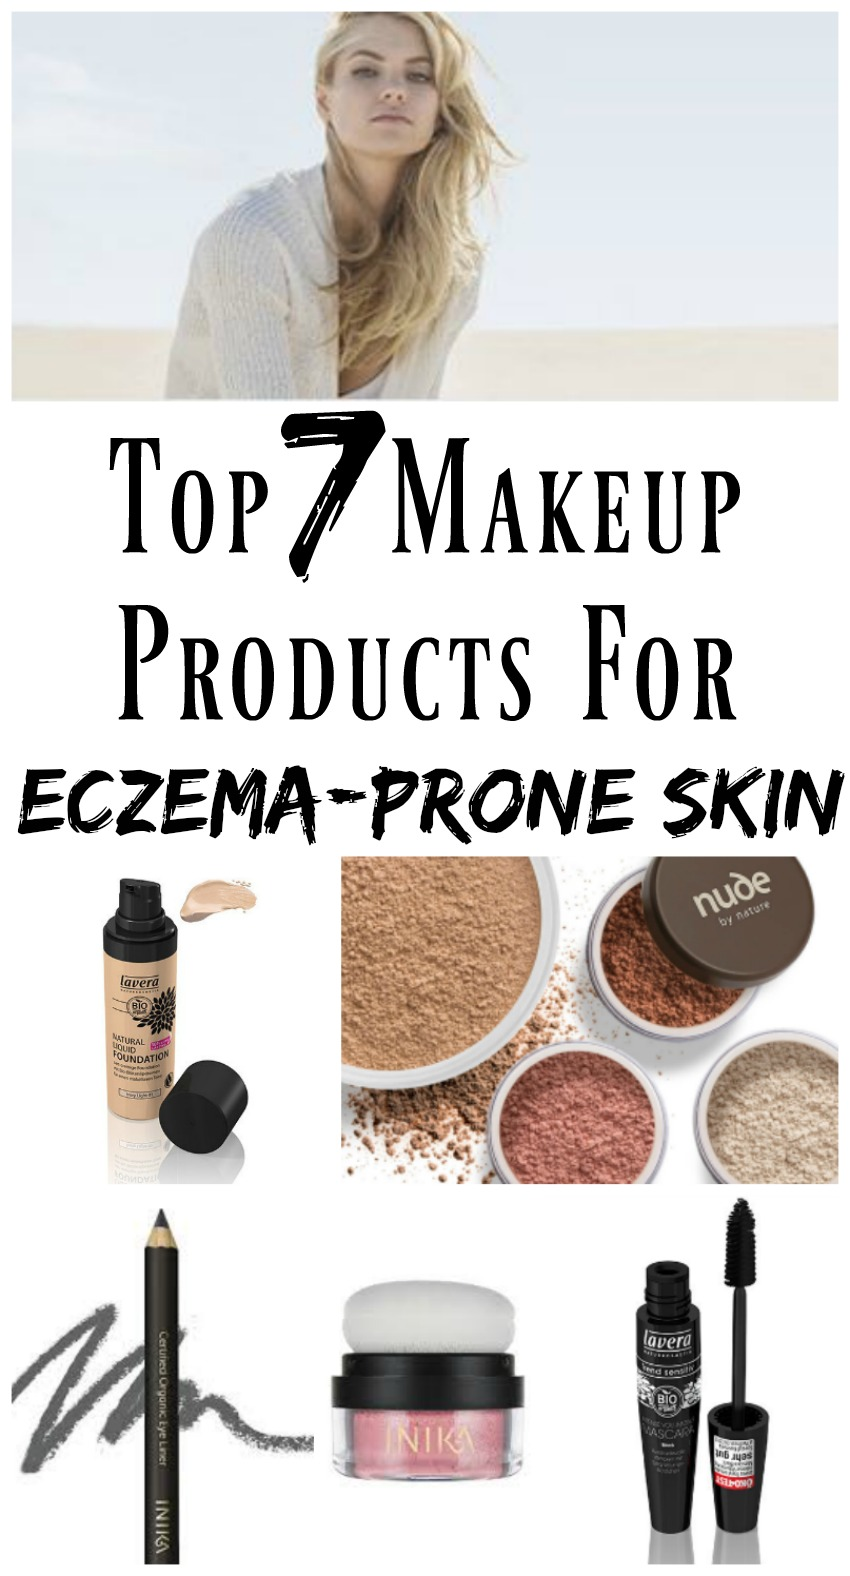 eczema skin makeup prone face eye dry eyes around psoriasis patches rash won later healing away cream treatment care why